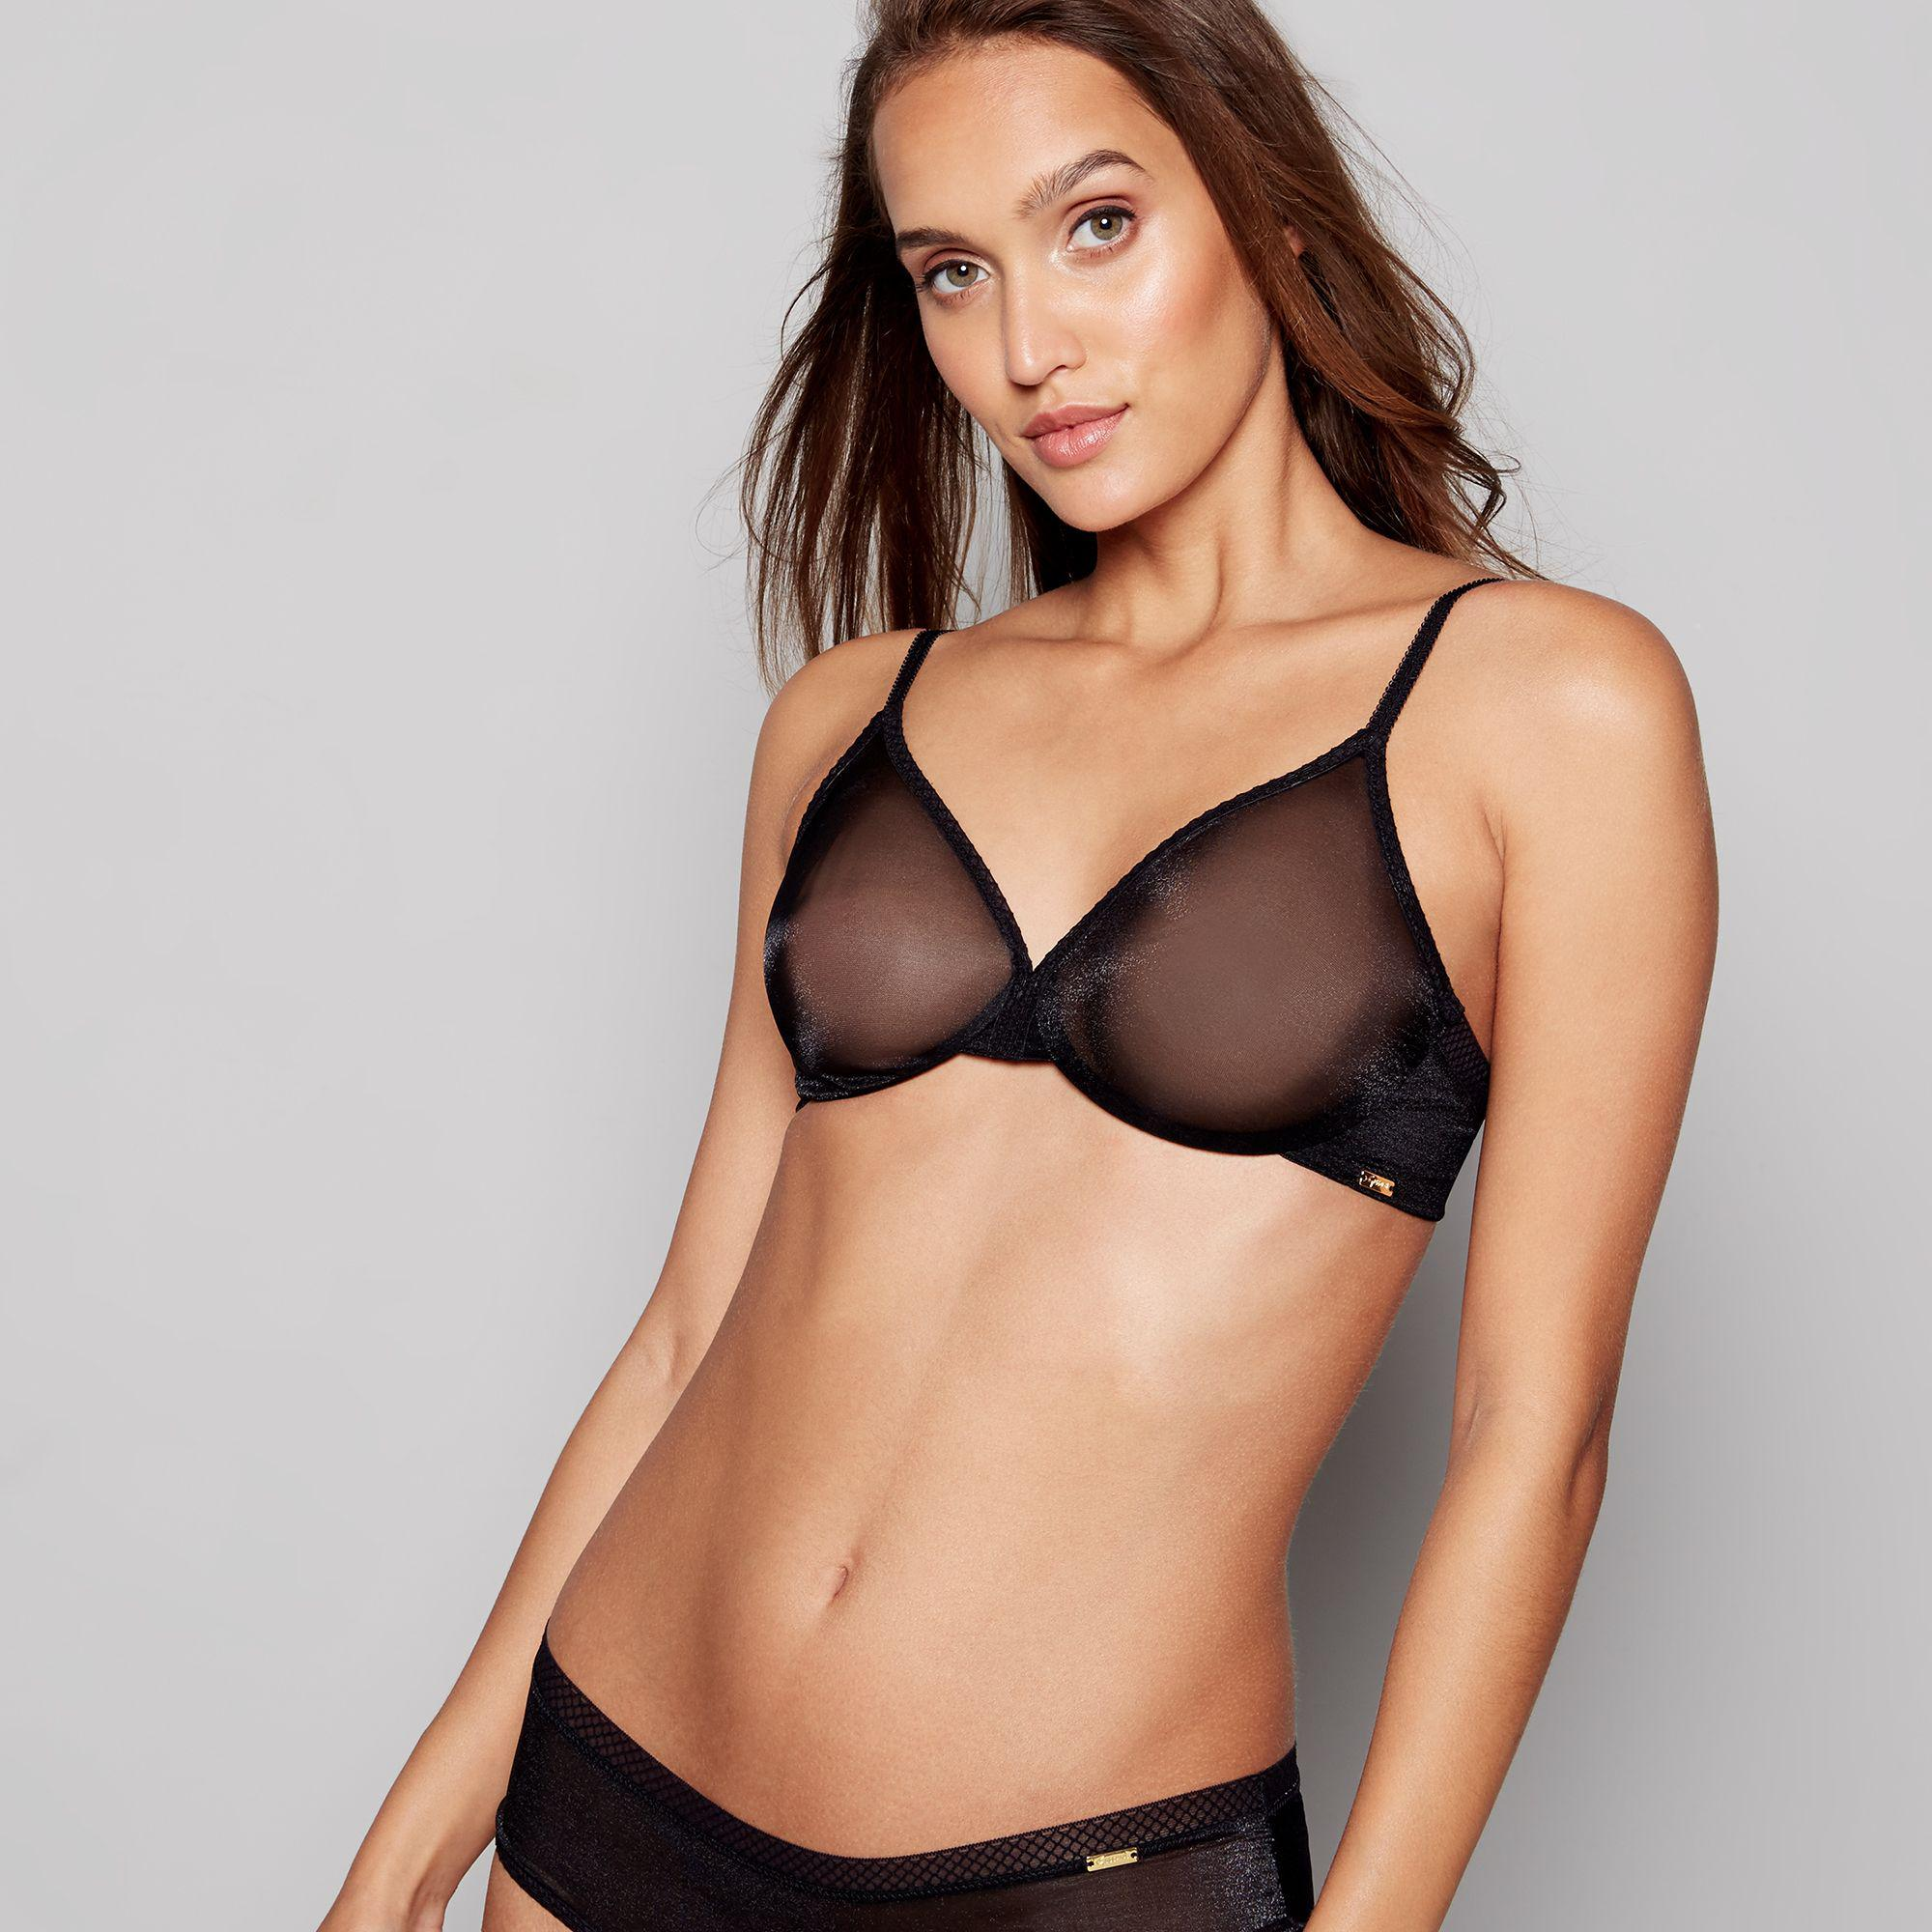 deb75f40a5 Gossard - Black Mesh  glossies  Underwired Non-padded Plunge T-shirt Bra.  View fullscreen